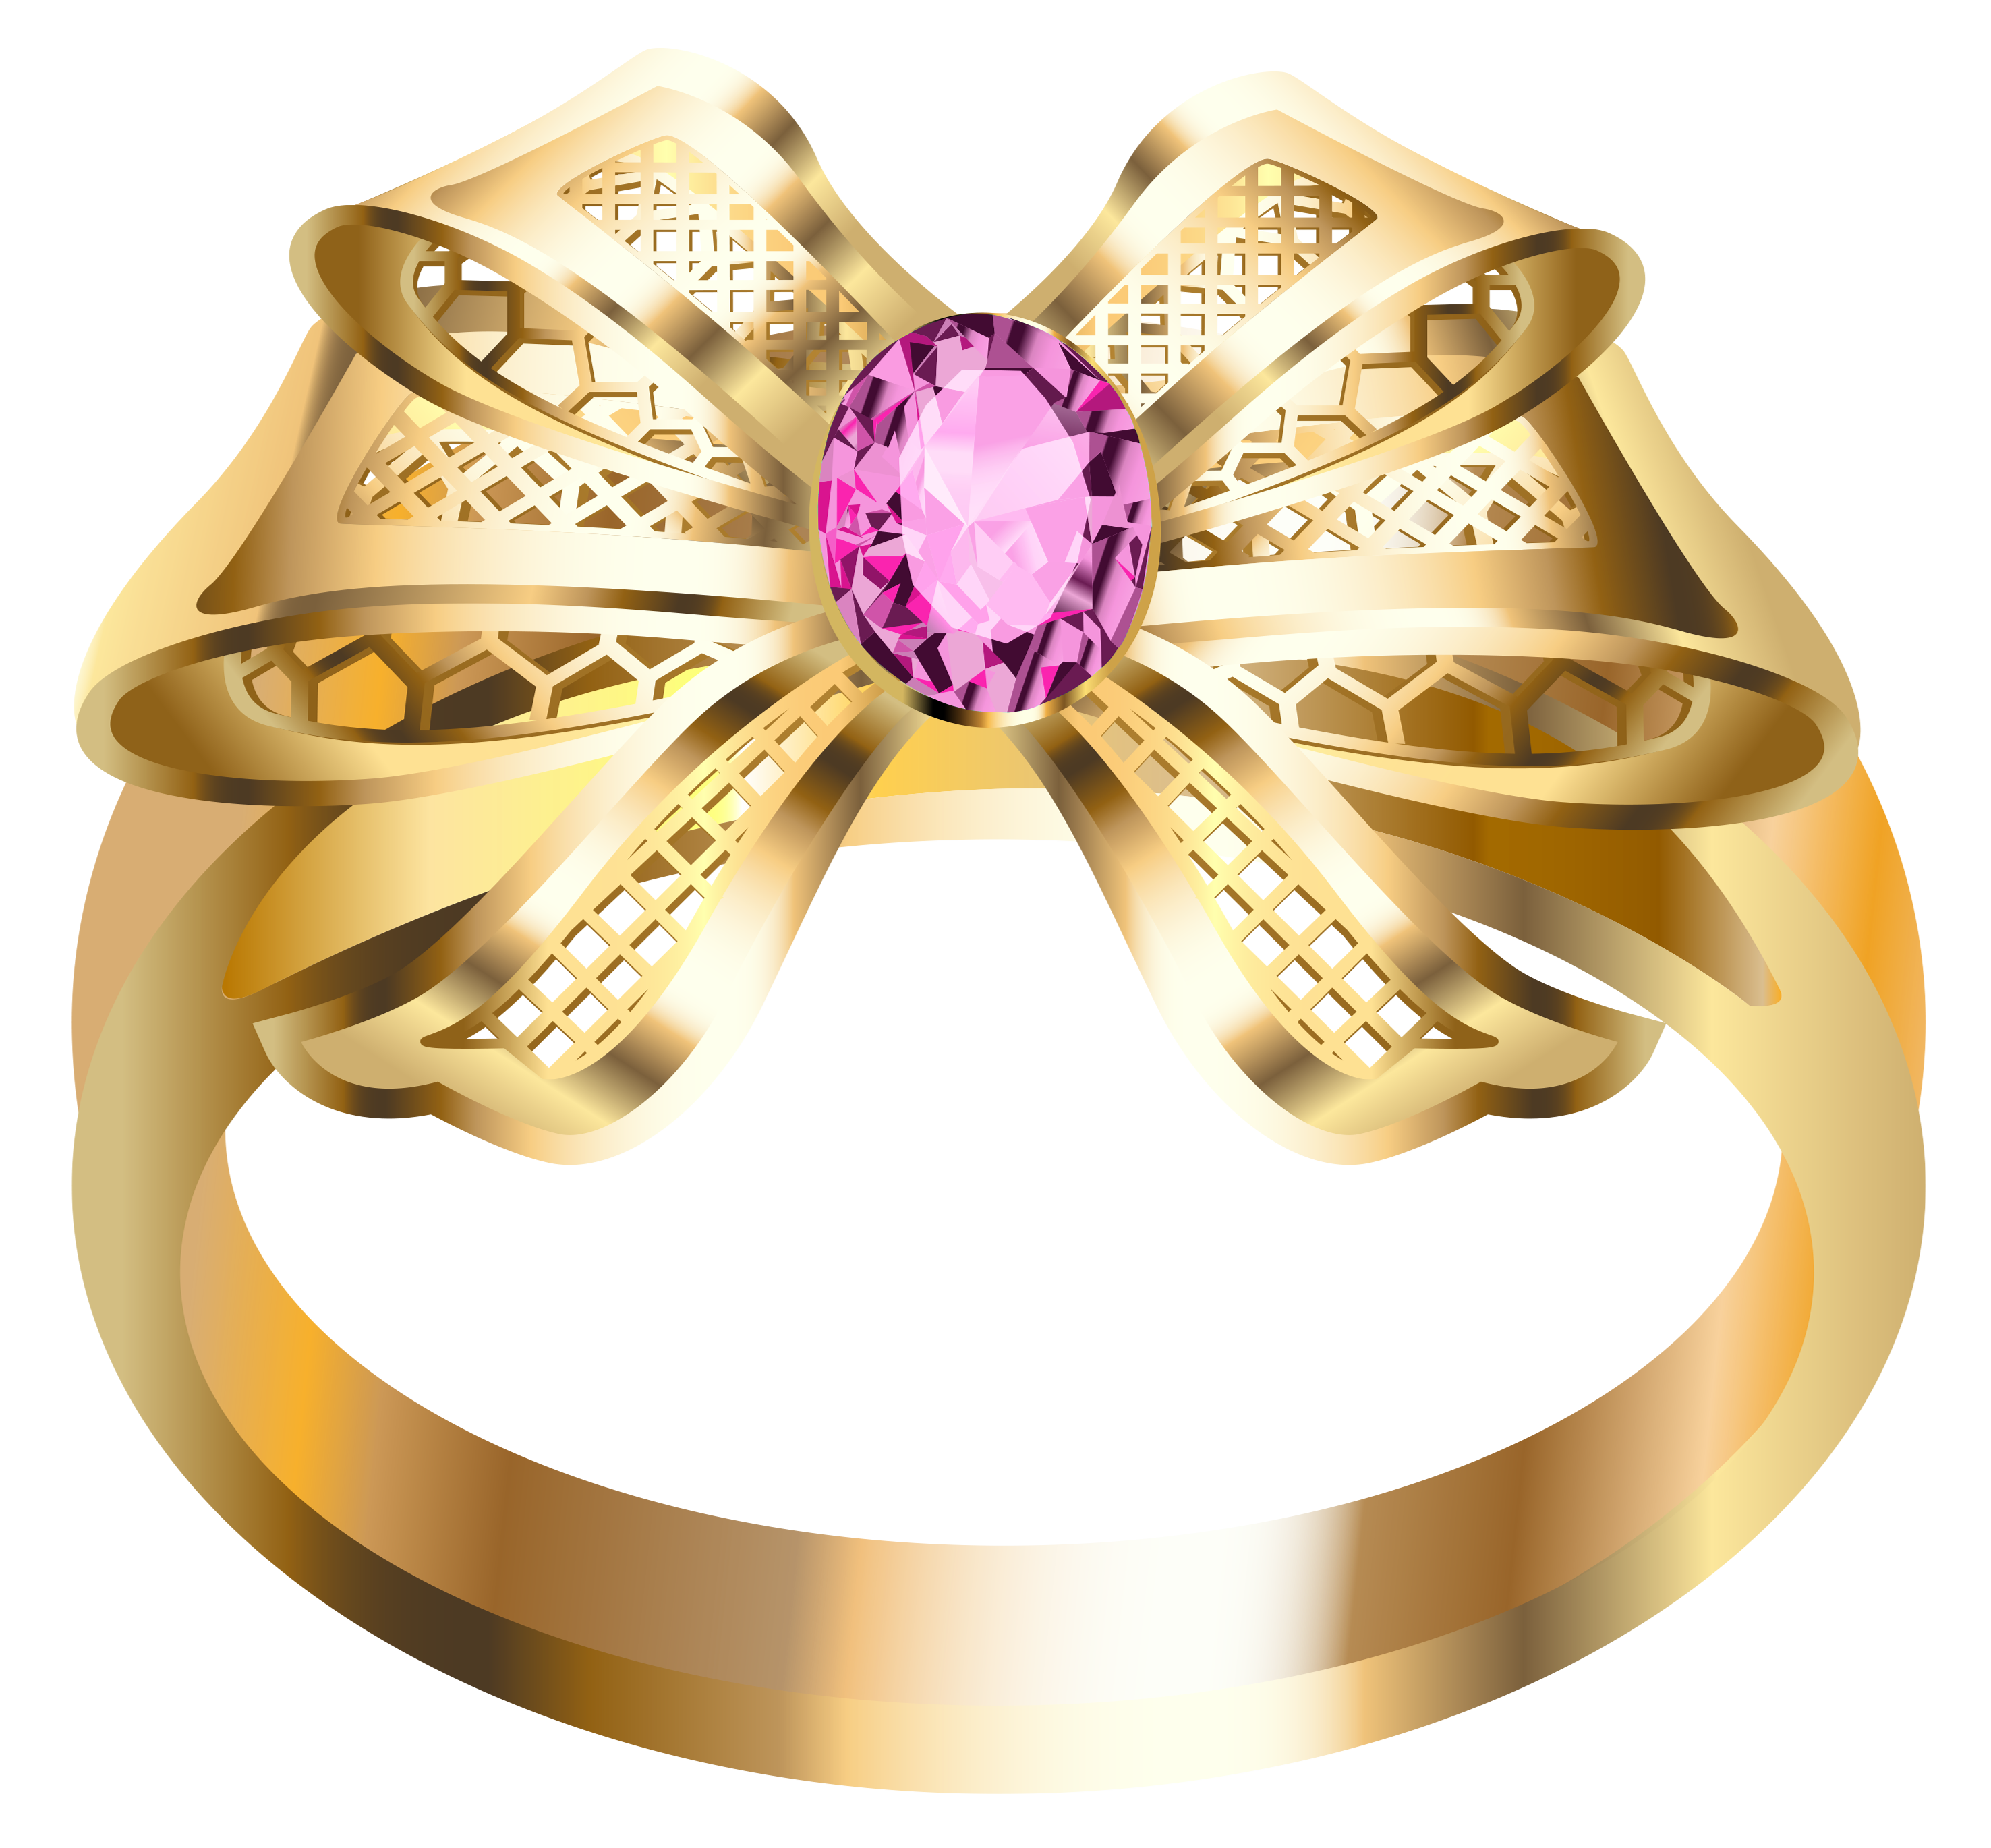 Gold Ring With Diamonds Png Image Pink Diamond Gold Rings Golden Ring